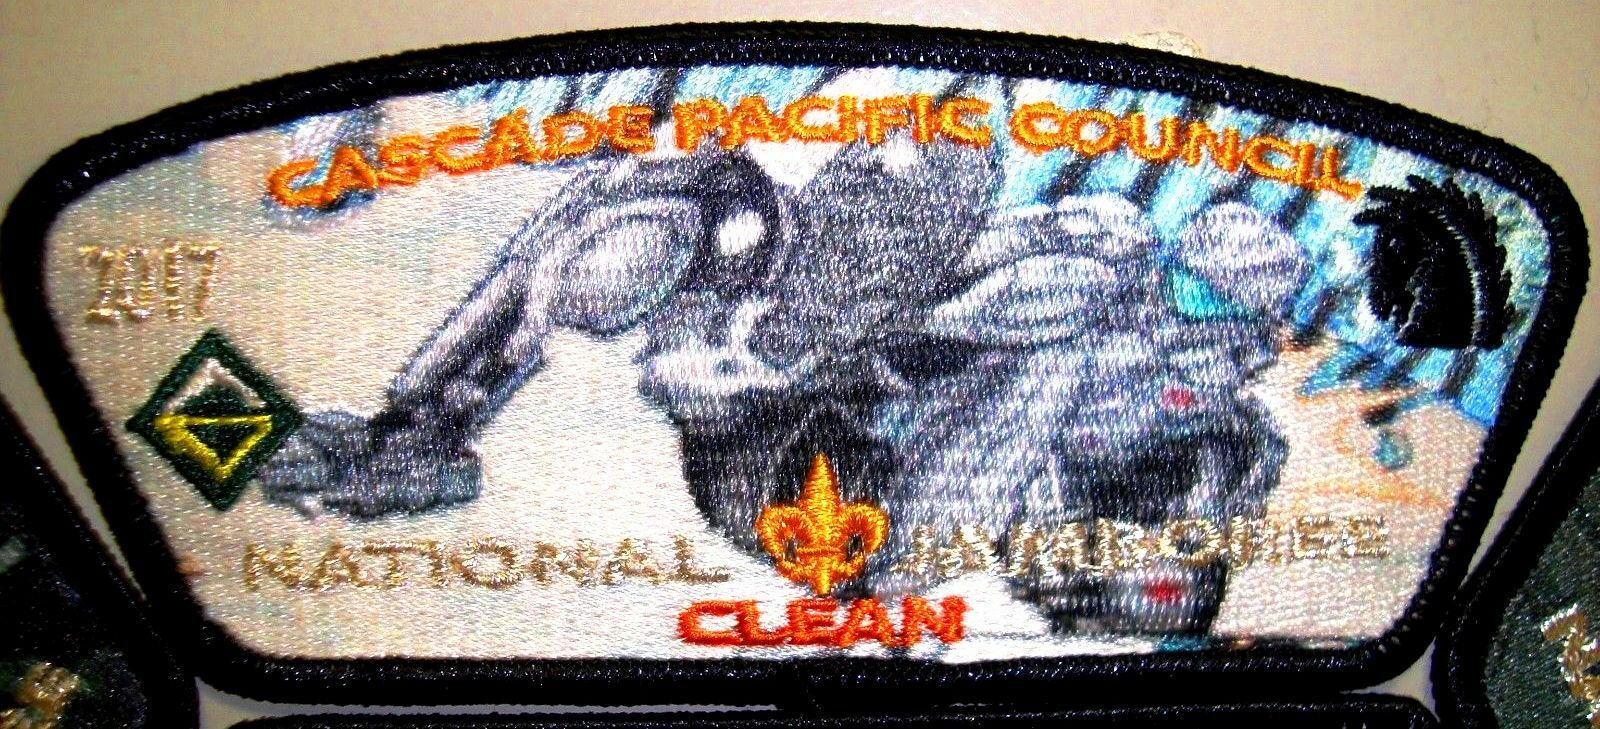 CASCADE PACIFIC WA OA 442 2017 JAMBOREE SCOUT LAW LAW LAW OBEDIENT 7-PATCH DELEGATE HALO 5fcc6e